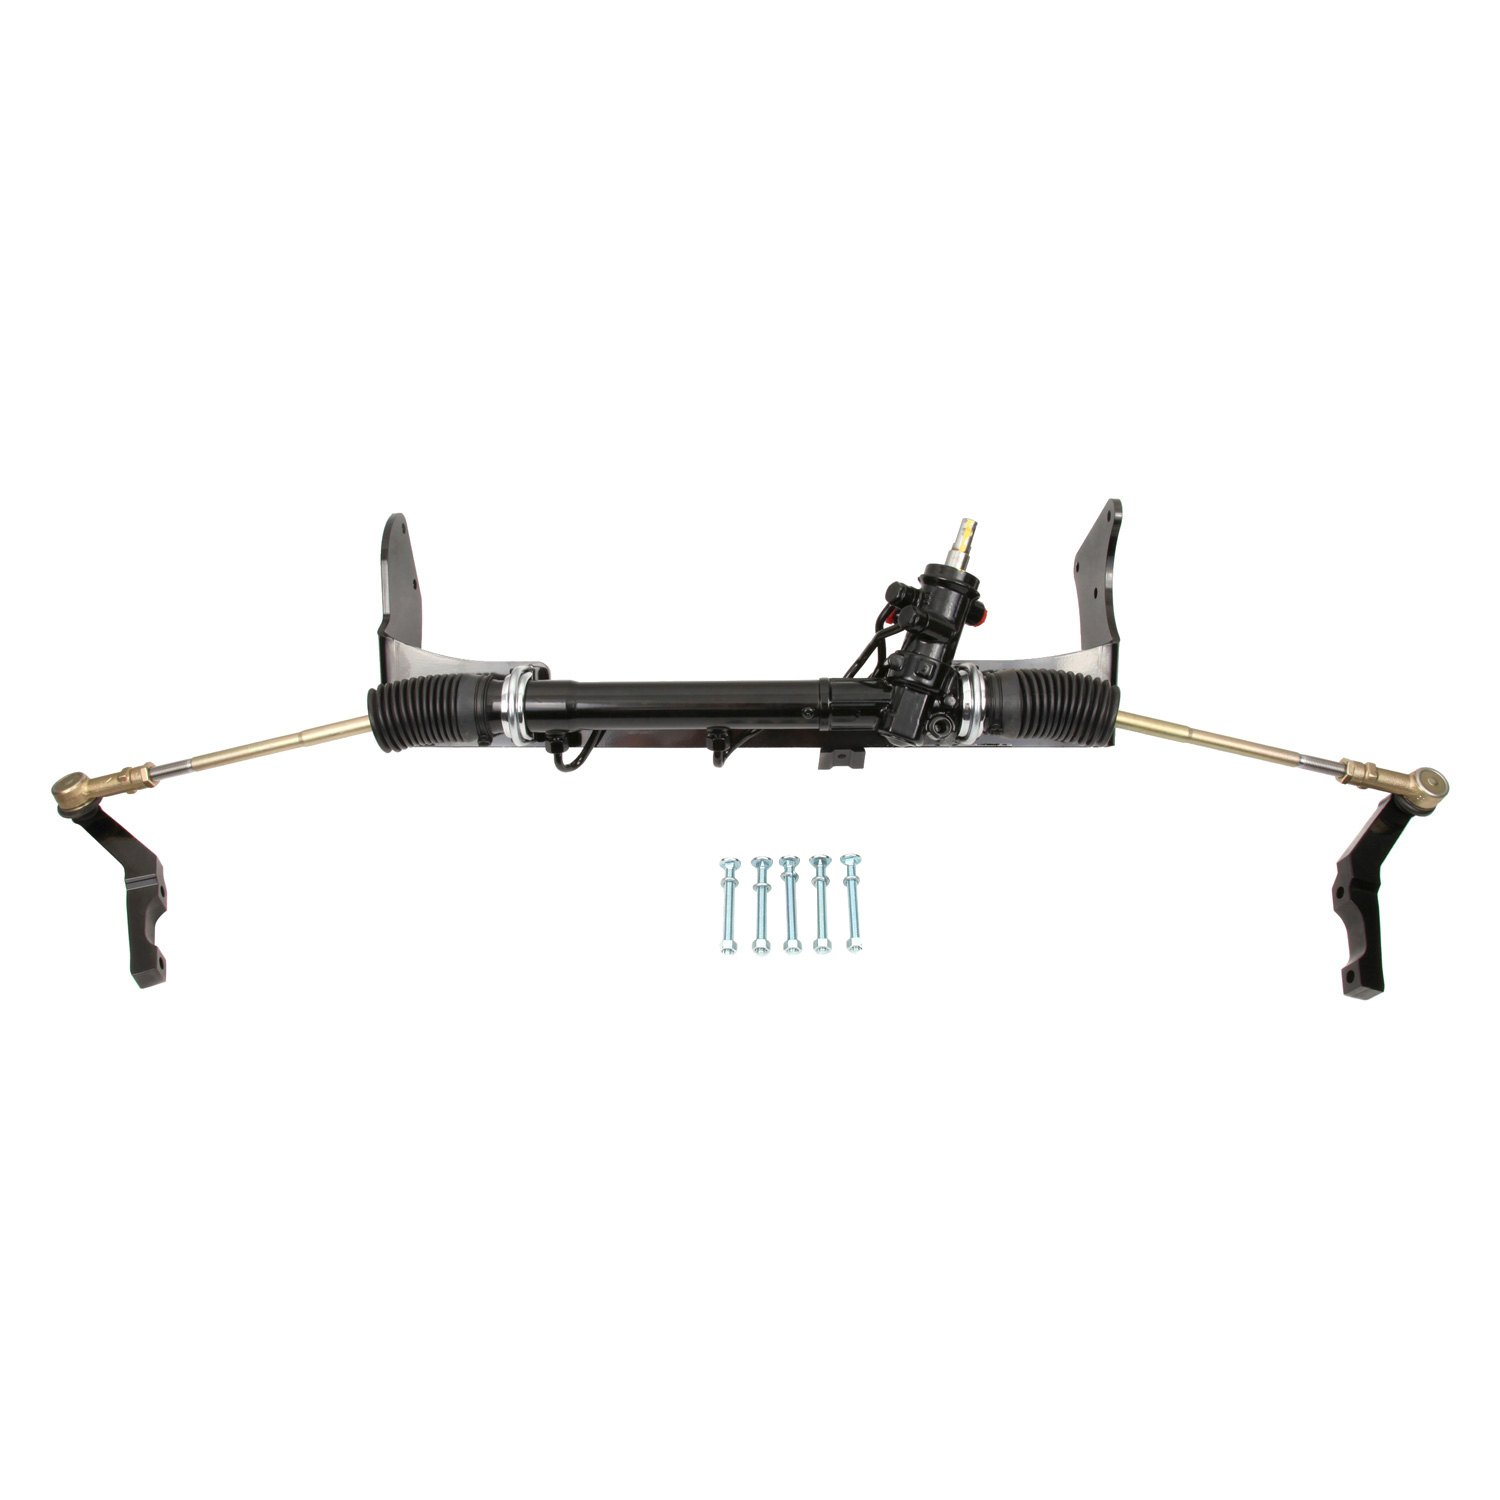 For Chevy Bel Air 55 57 Unisteer Hydraulic Power Steering